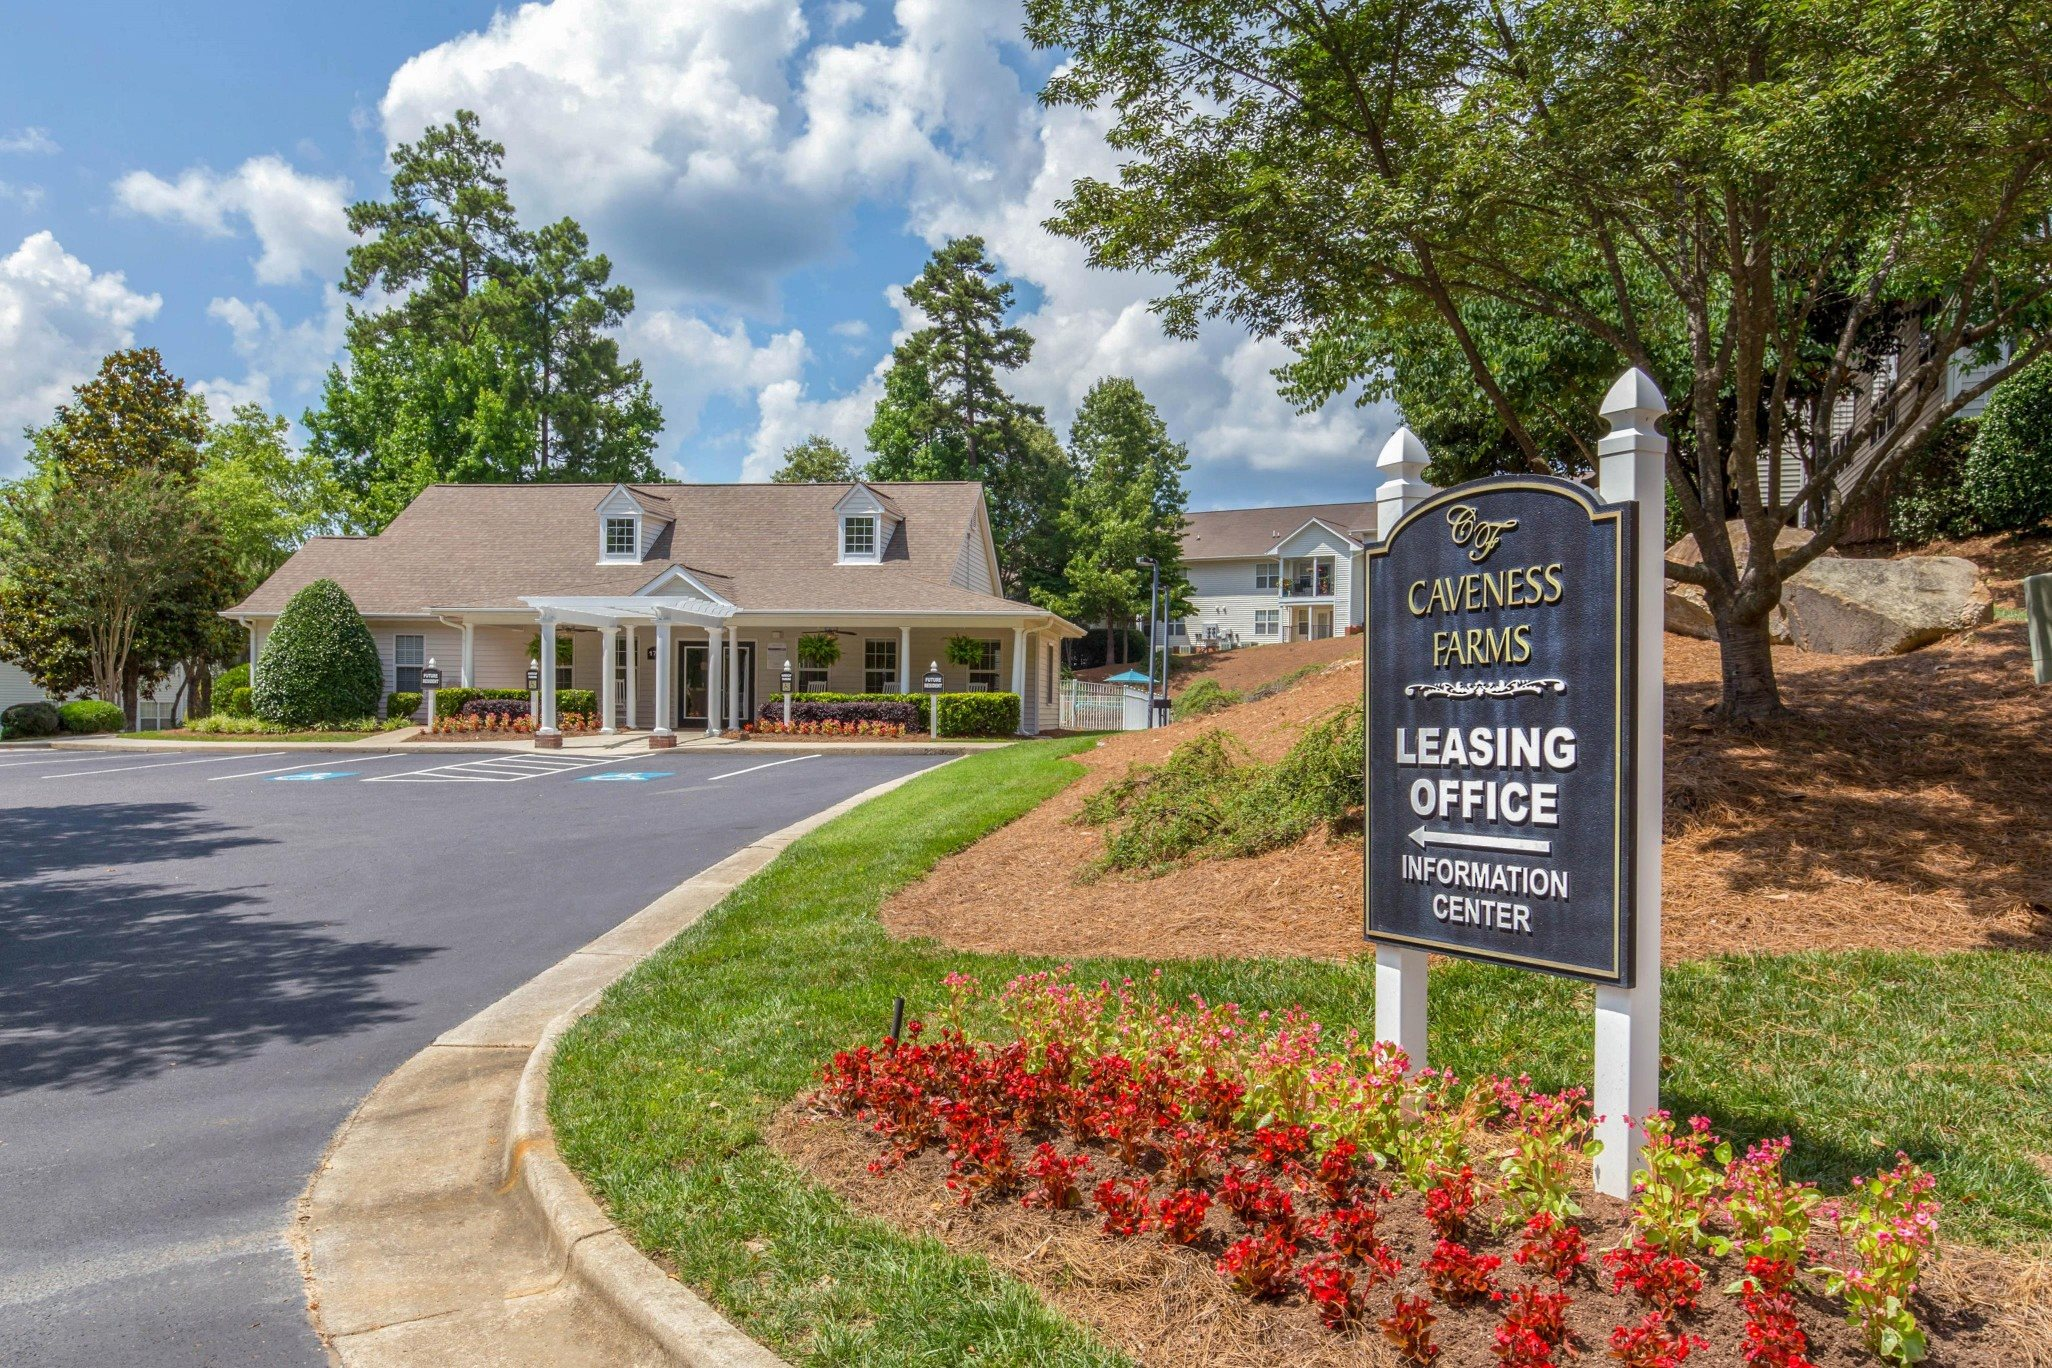 Photos and Video of Caveness Farms Apartment Homes in Wake Forest, NC